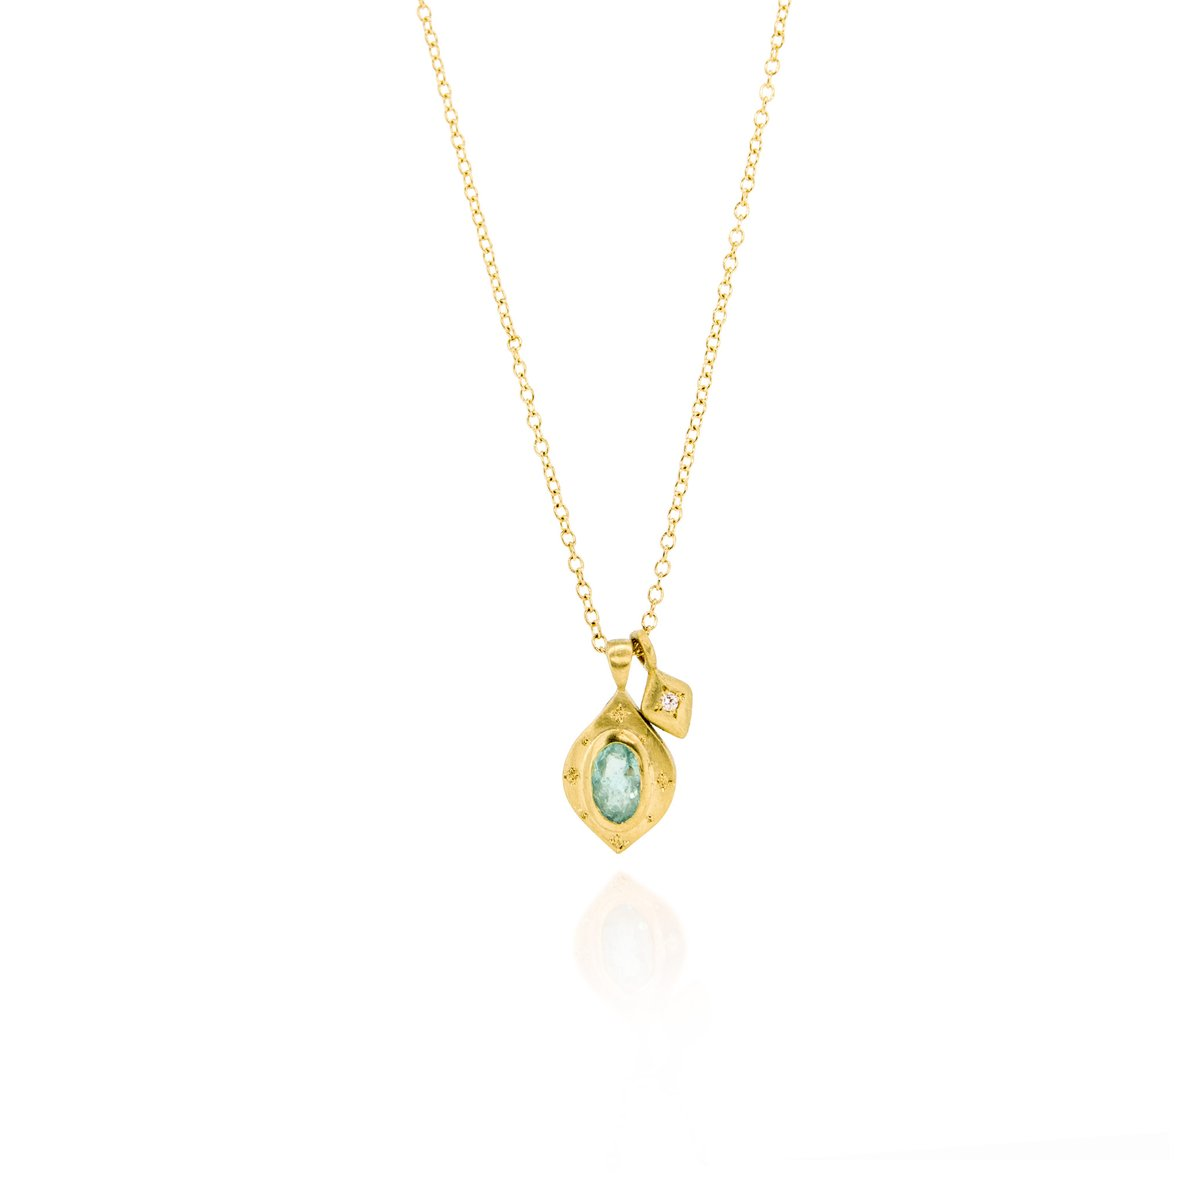 Drops of Happiness Oval Pendant Necklace